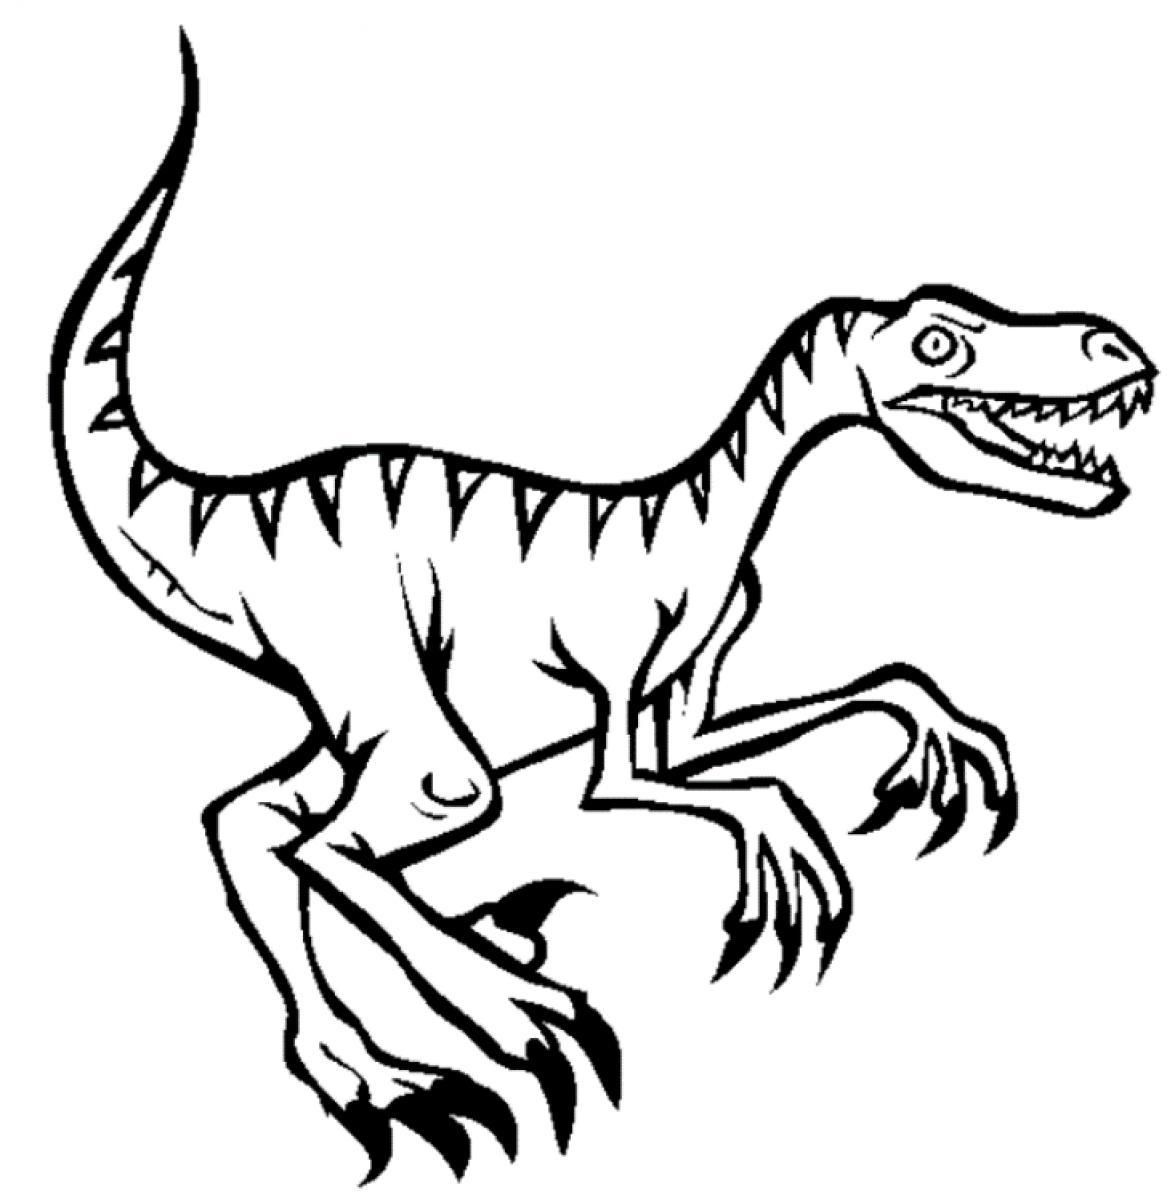 Interactive dinosaur coloring pages - Dinosaur Coloring Pages